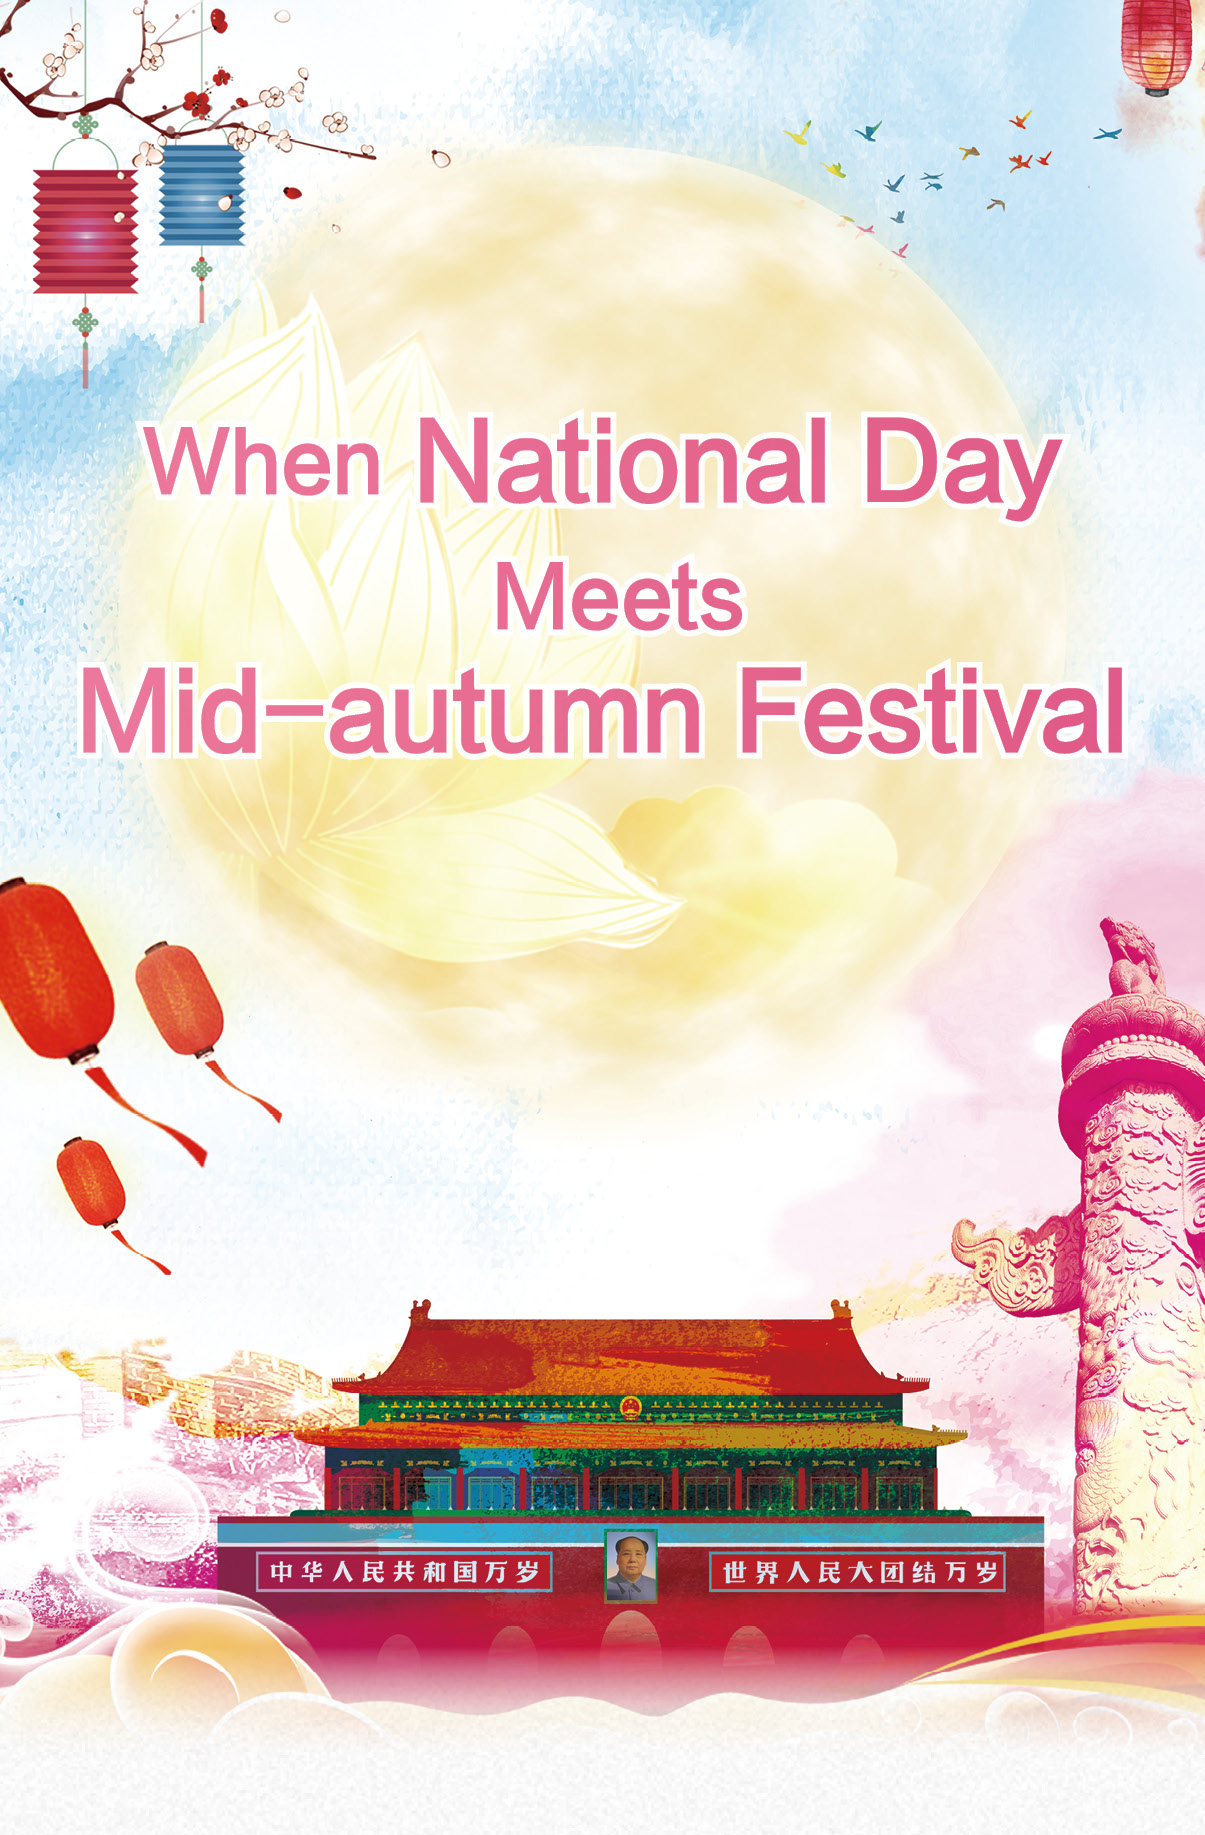 When National Day Meets Mid-autumn Festival